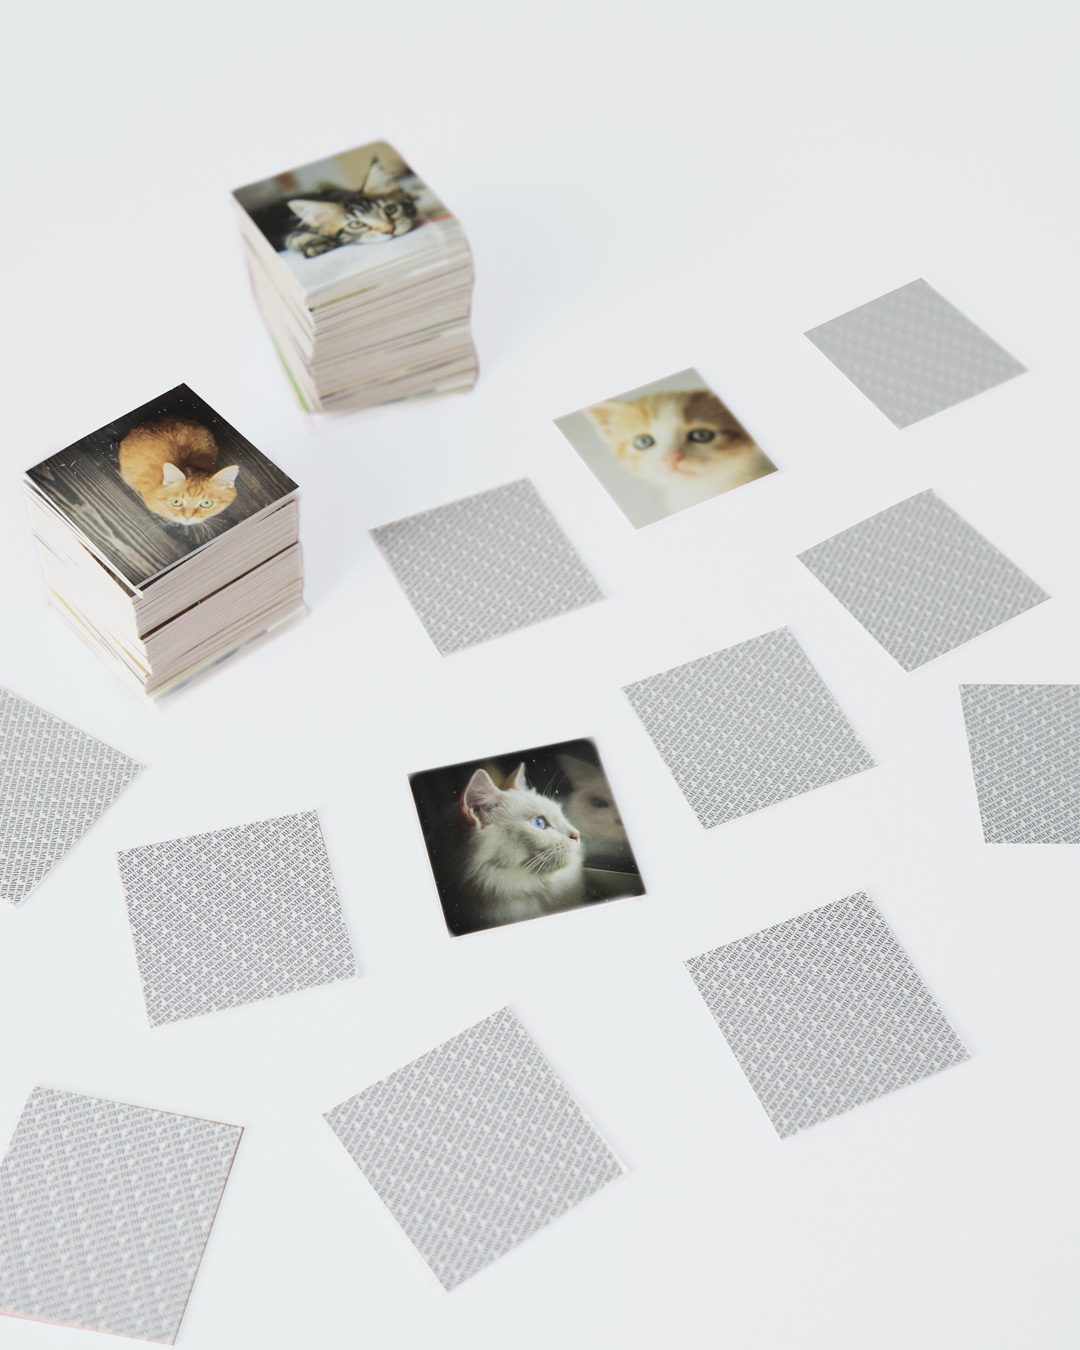 remember cats memory game, cards with cat fotos on a table